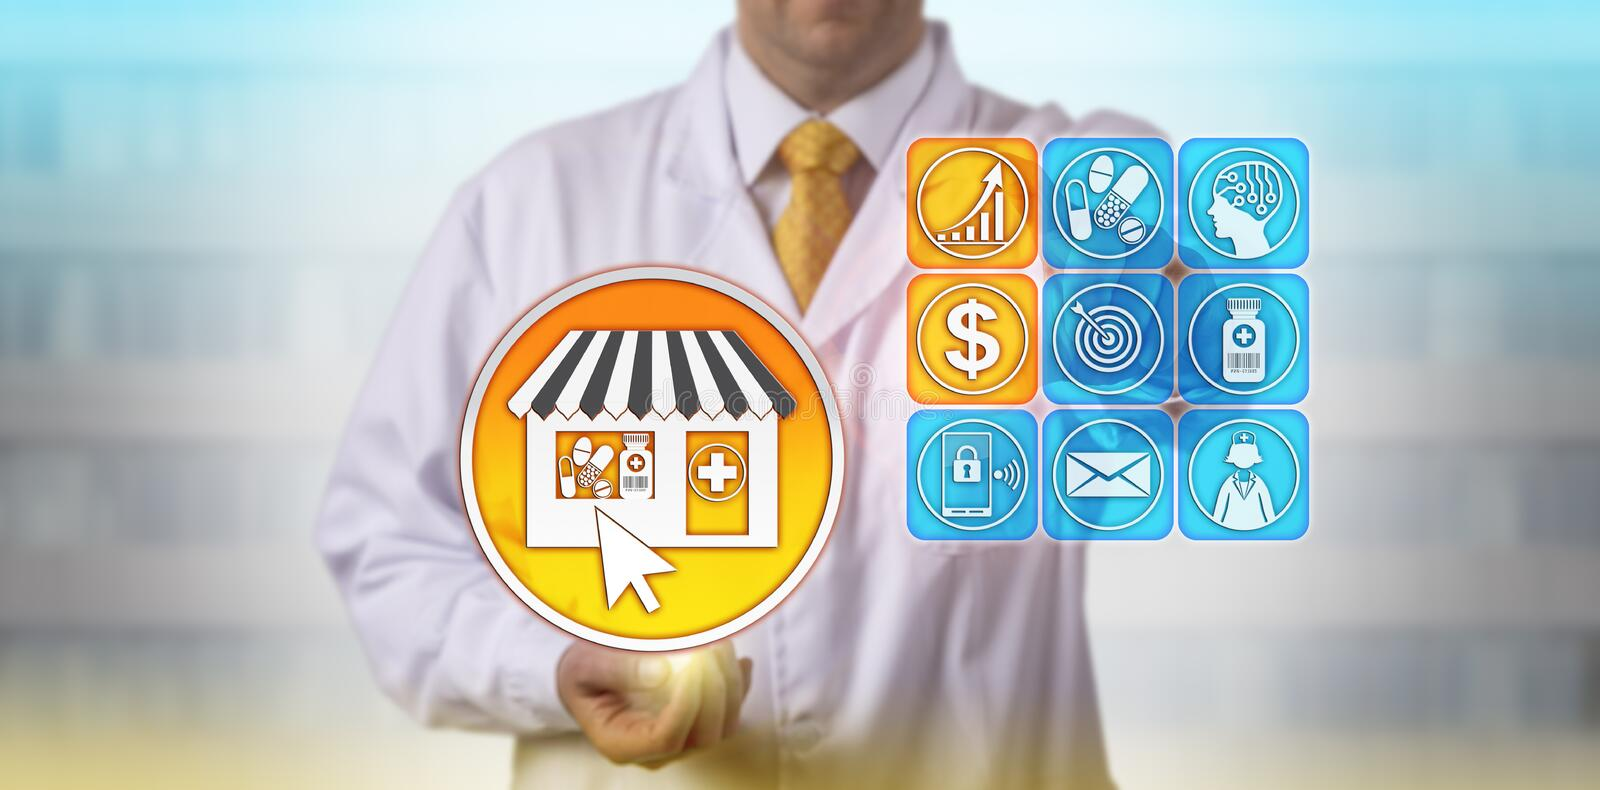 Pharmacist Forecasting Growth Of Self-Care Market royalty free stock images